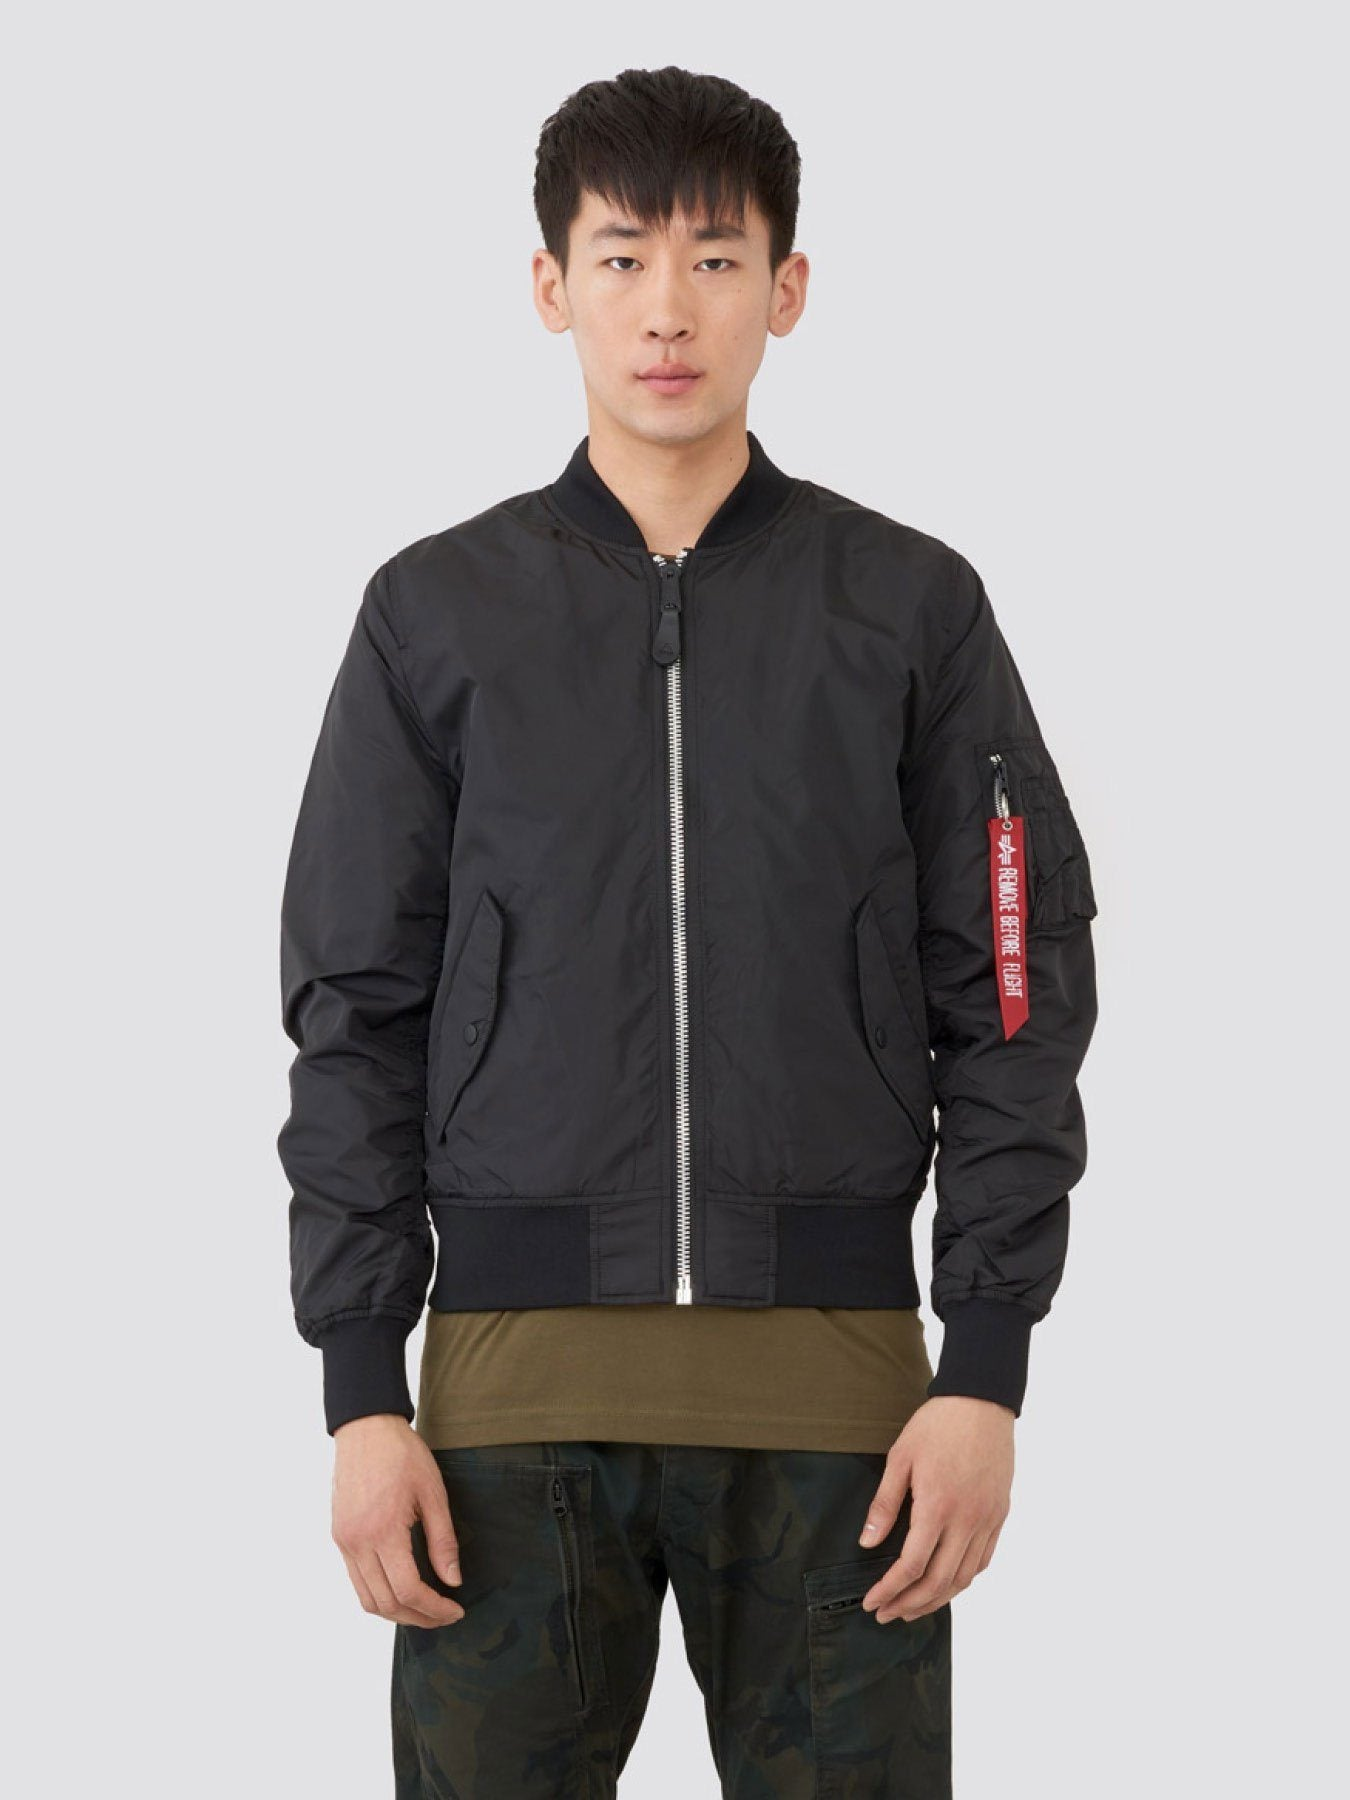 L-2B DRAGONFLY BLOOD CHIT BOMBER JACKET OUTERWEAR Alpha Industries BLACK 2XL